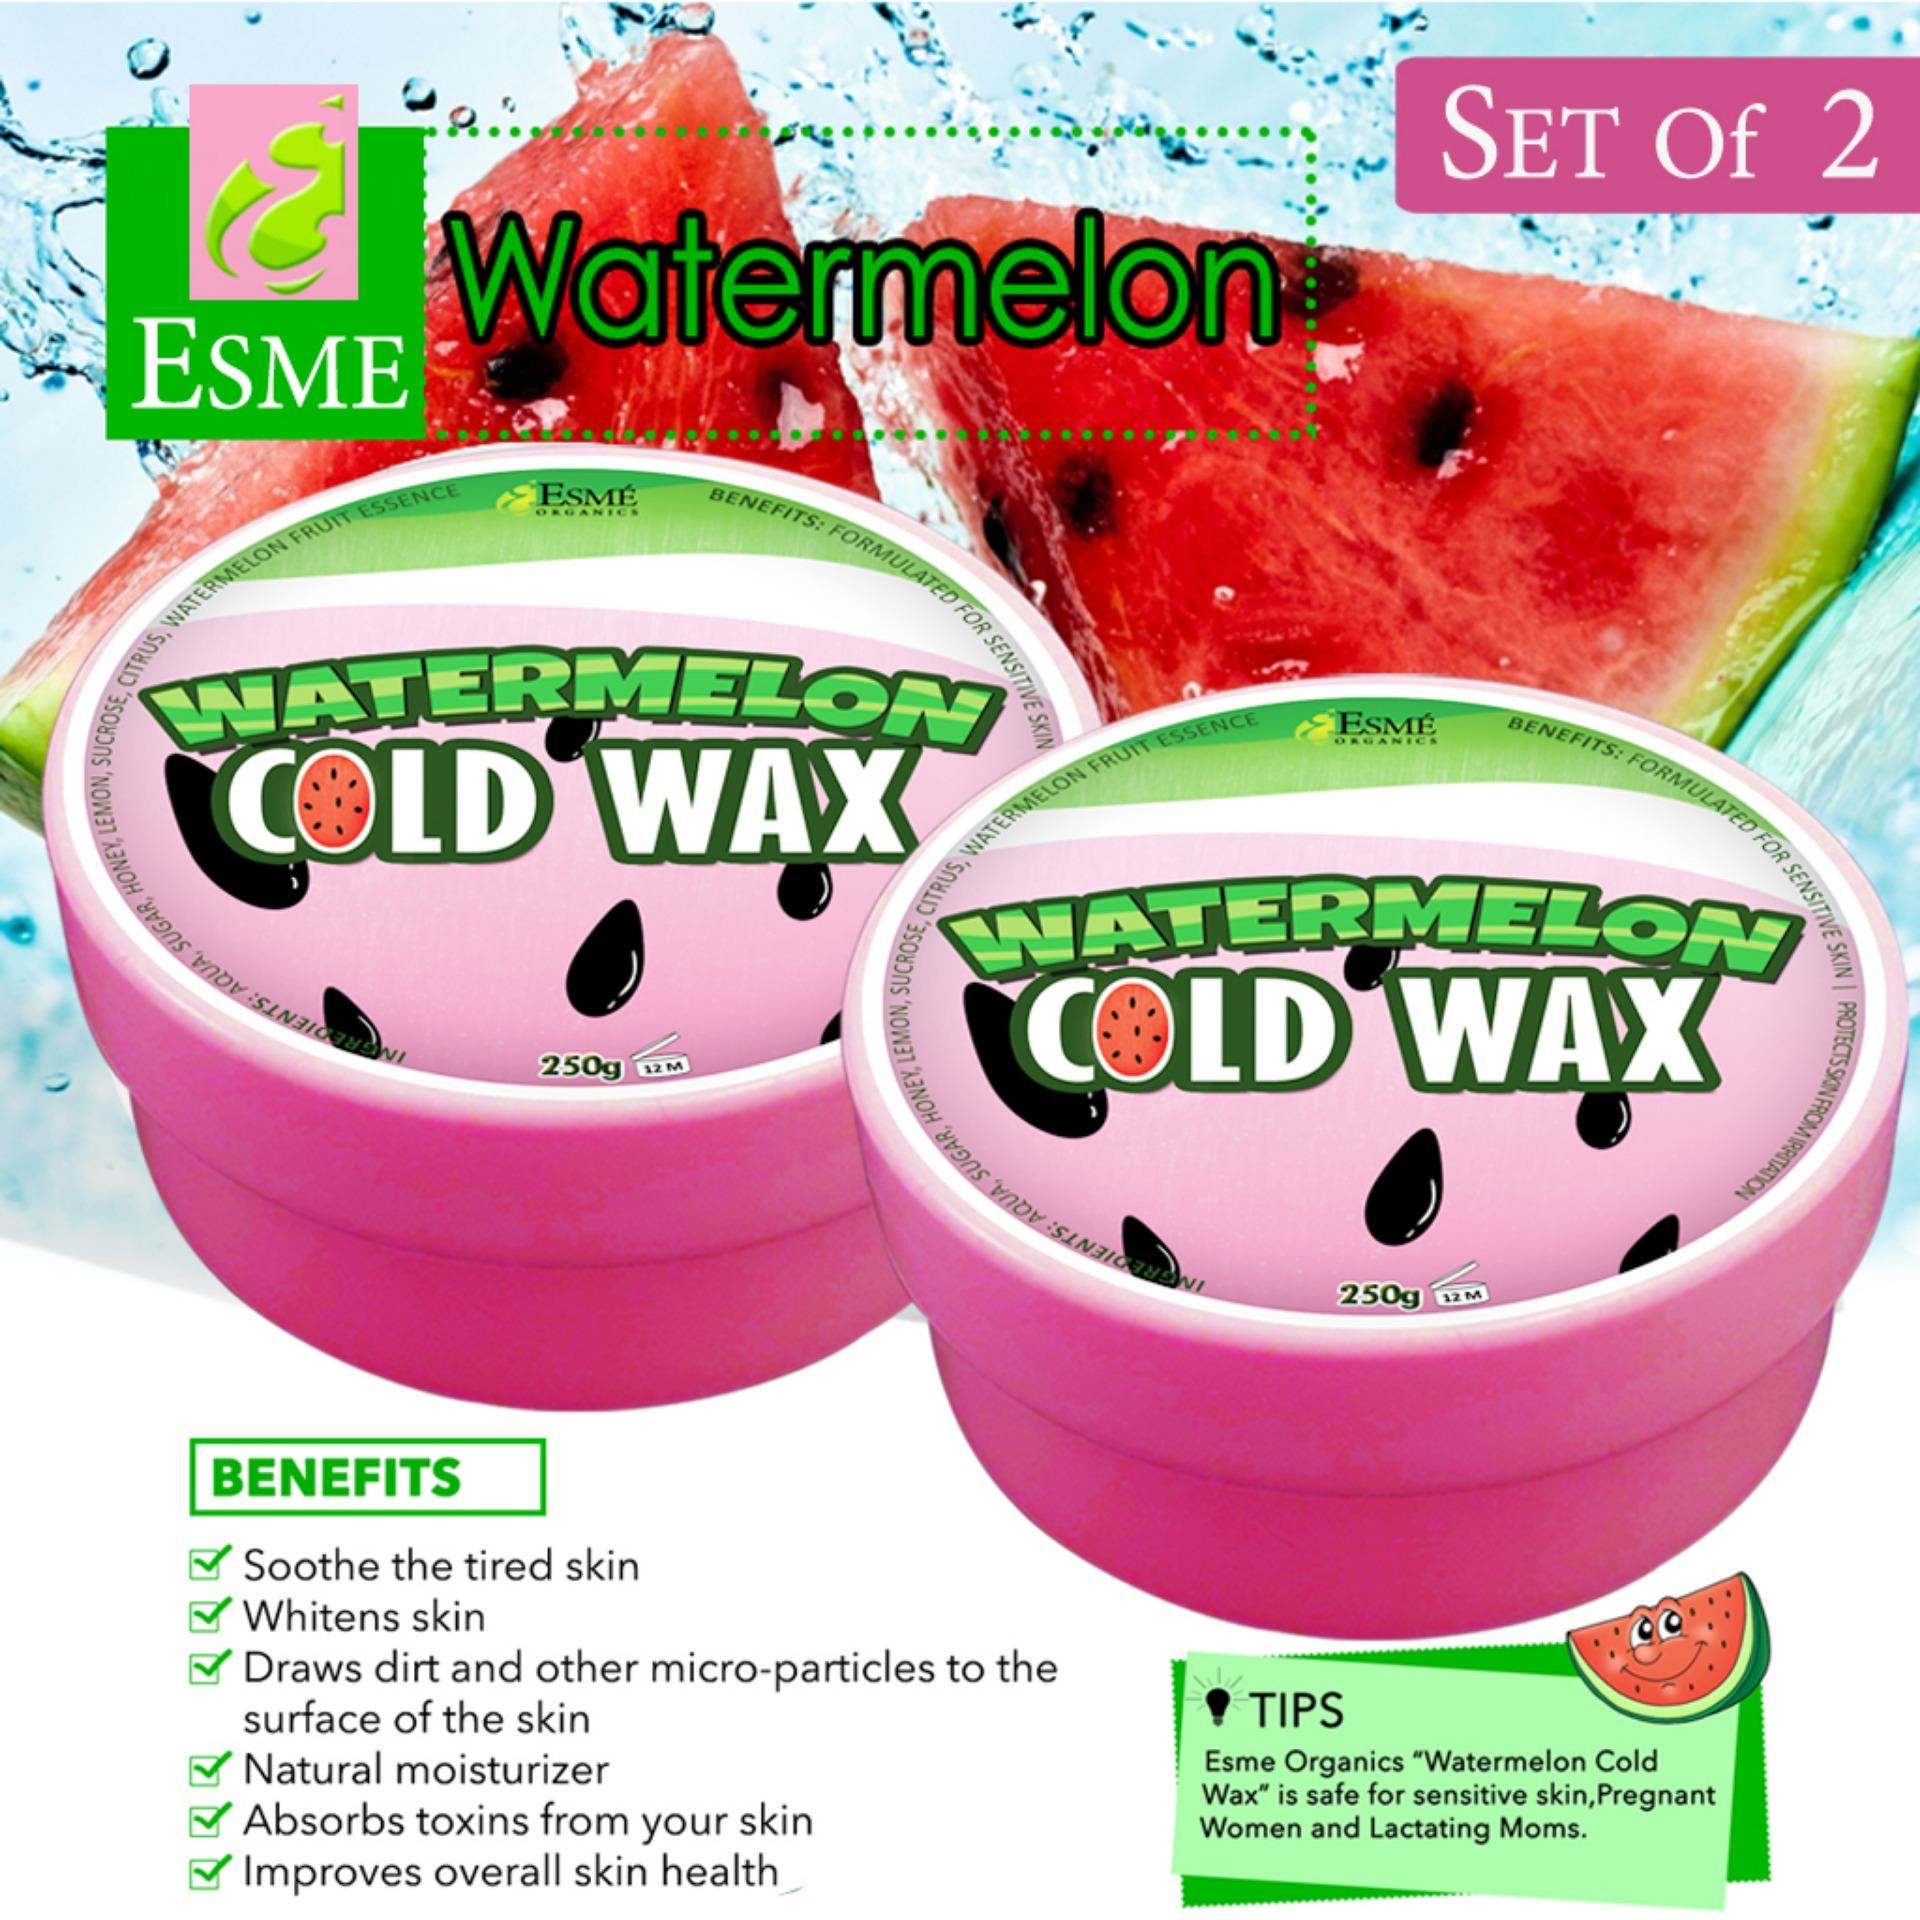 Esme Organic Cold Wax Hair Removal 250g (set Of 2) Watermelon By Lowest Price Guaranteed.